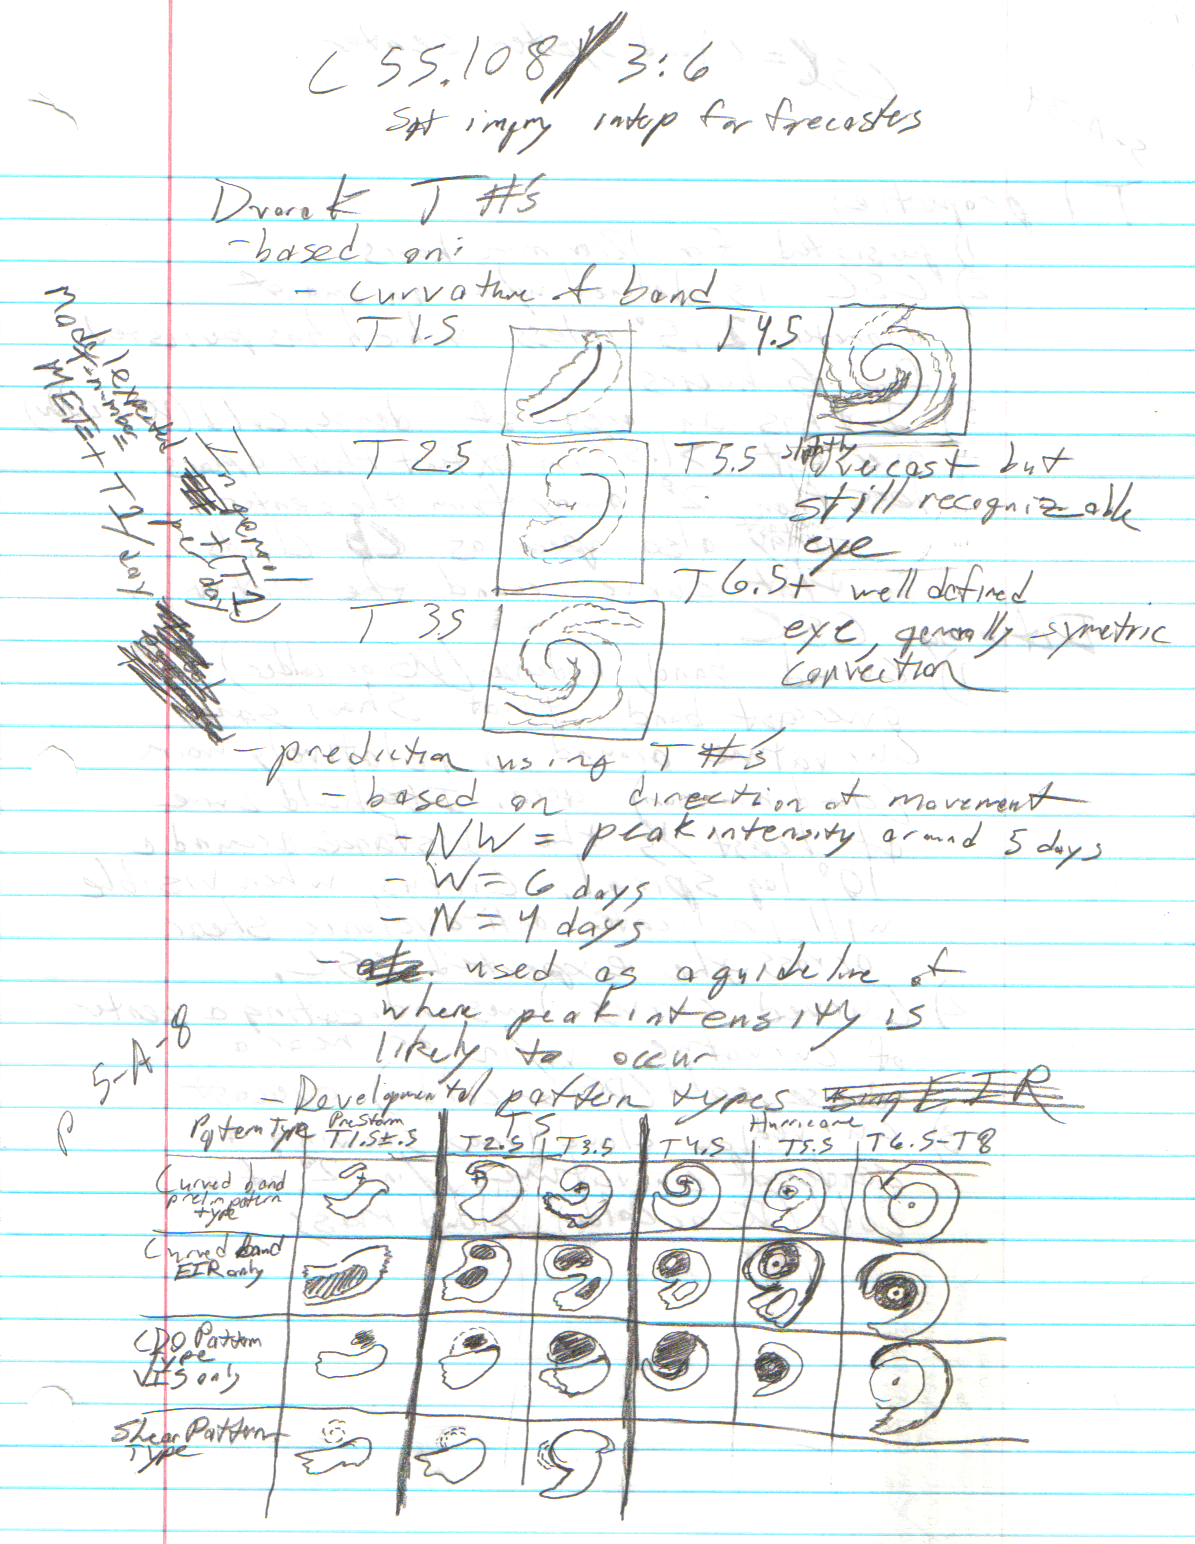 Notes on Dvorak Technique pg 1 by Dr-Morph